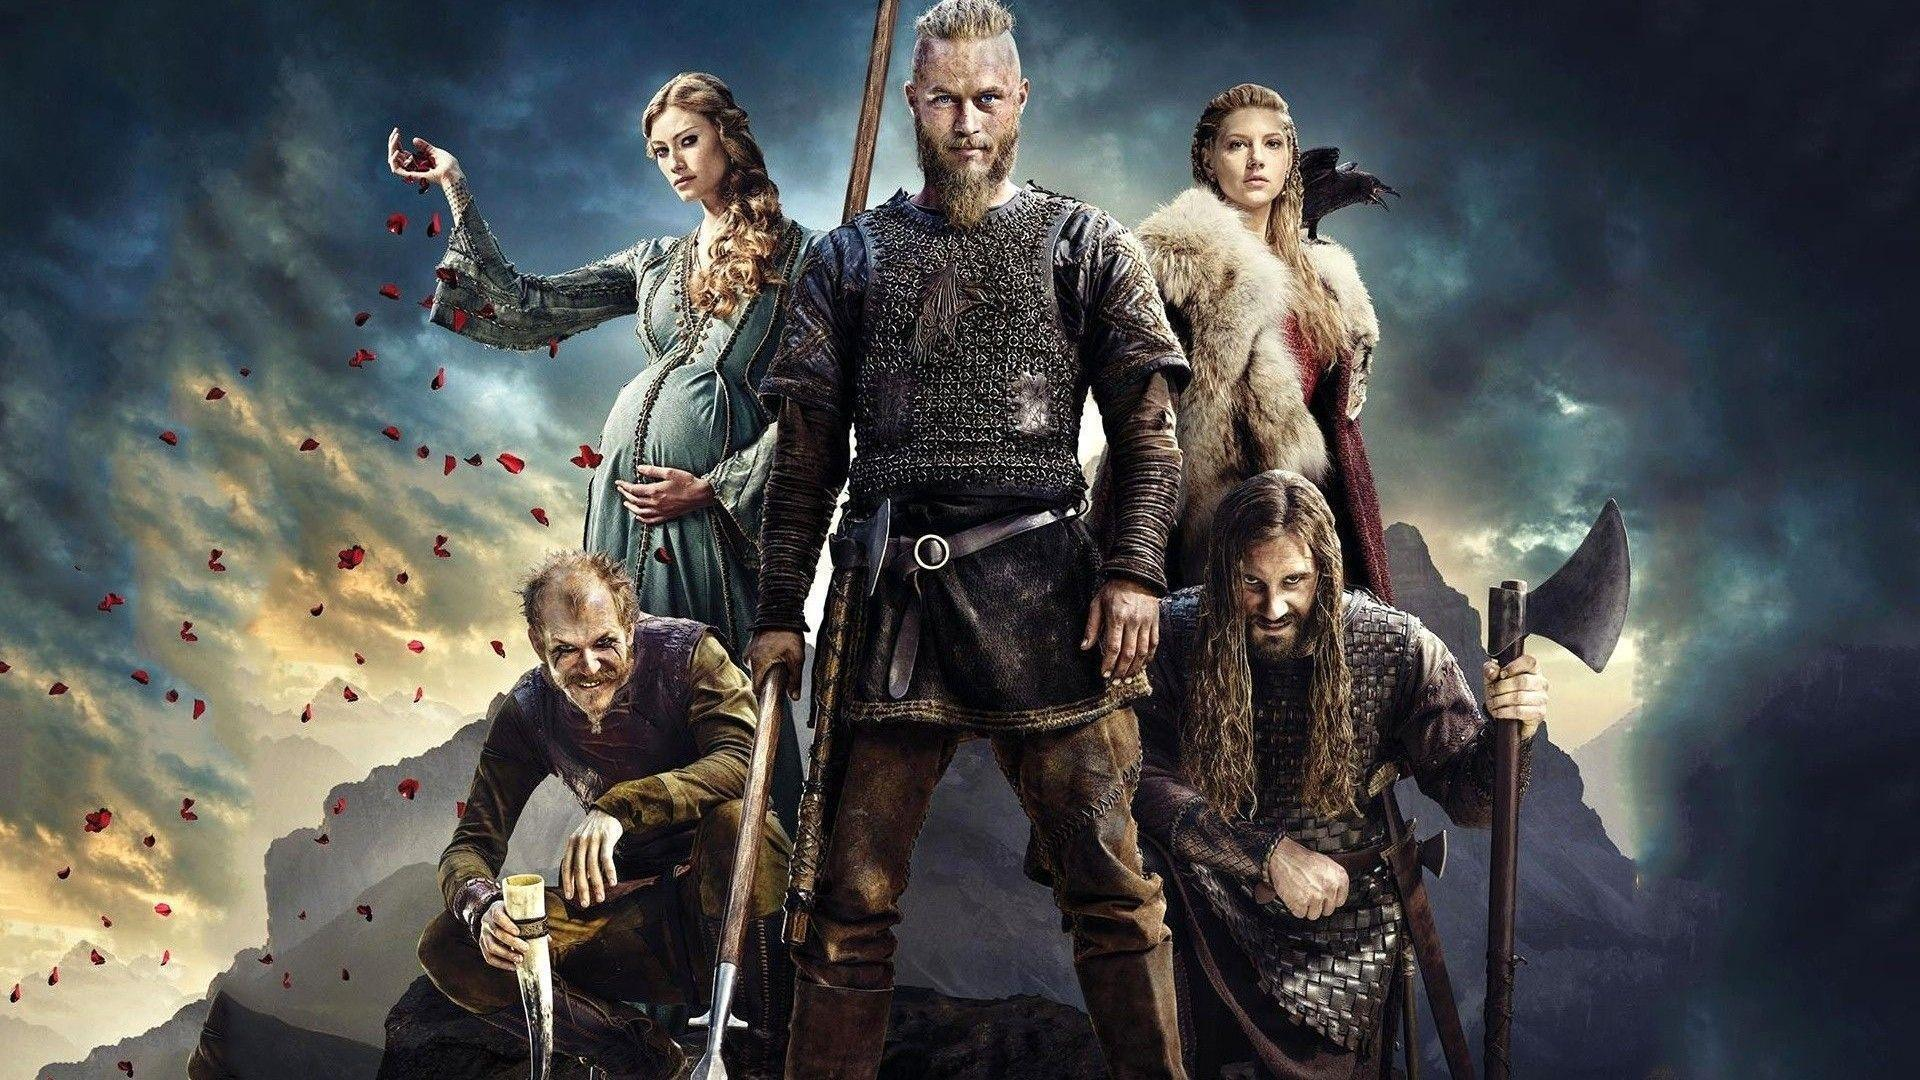 Vikings TV Show Wallpaper HD Download For PC & Laptop